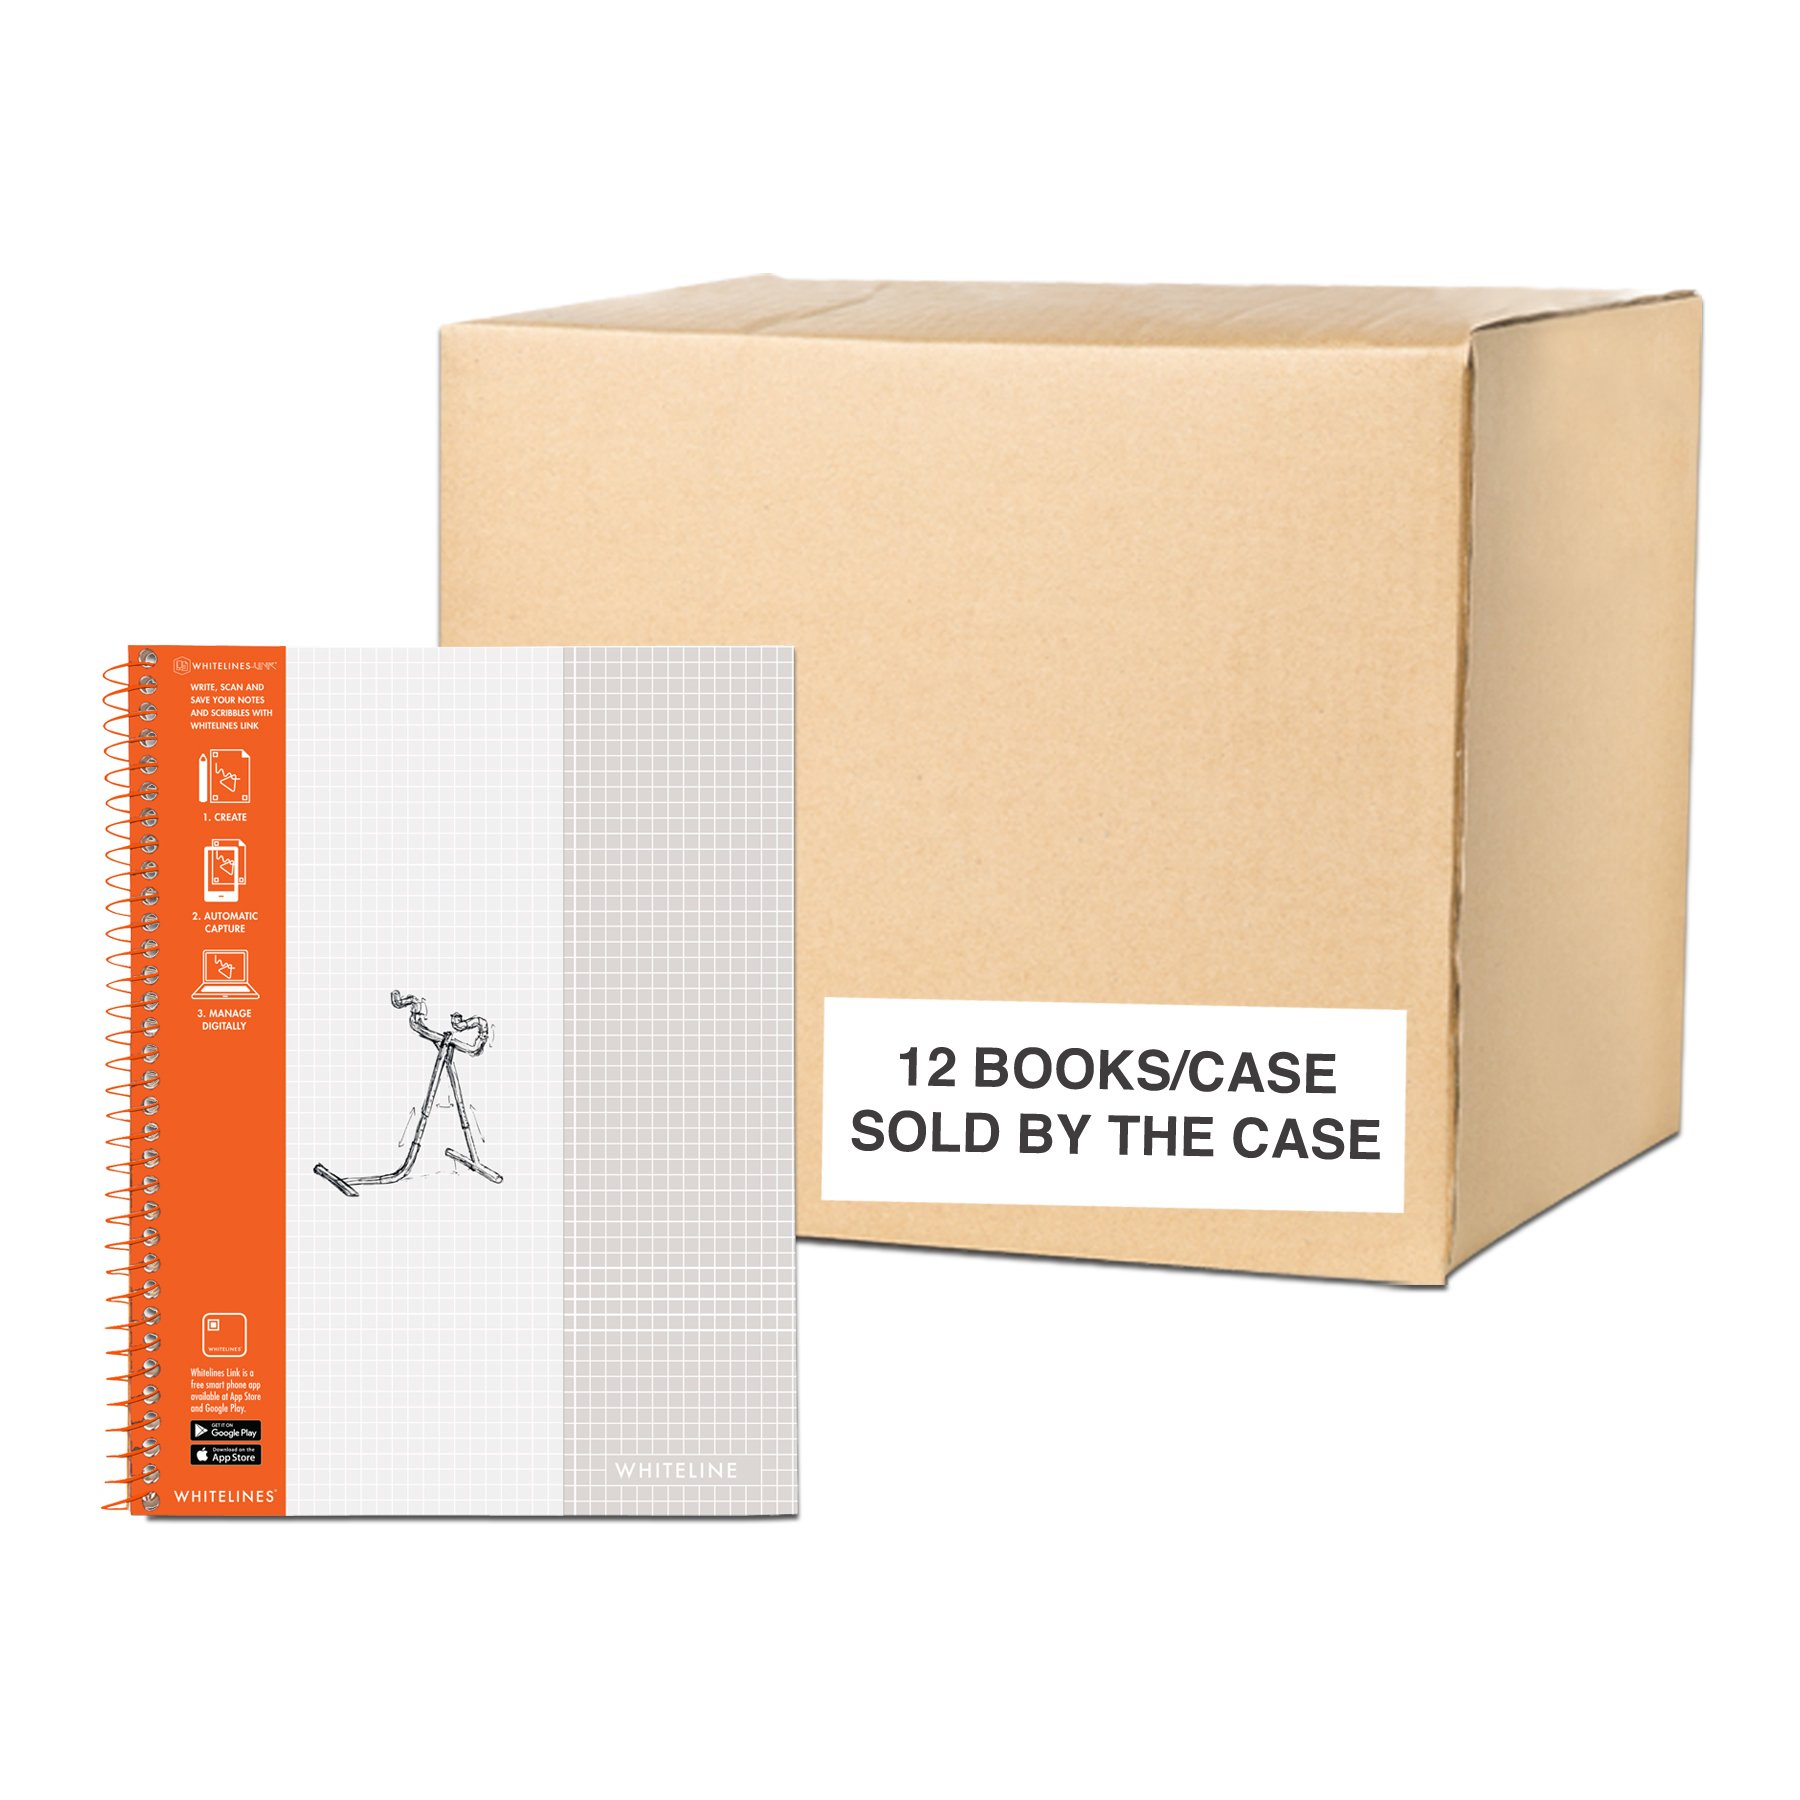 WhiteLines 17001cs Case of 12 Whitelines Notebooks, Grey Lined Paper, Background Disappears When You Scan Pages With Whitelines Free App, Case 11''x8.5'' Graph, Orange